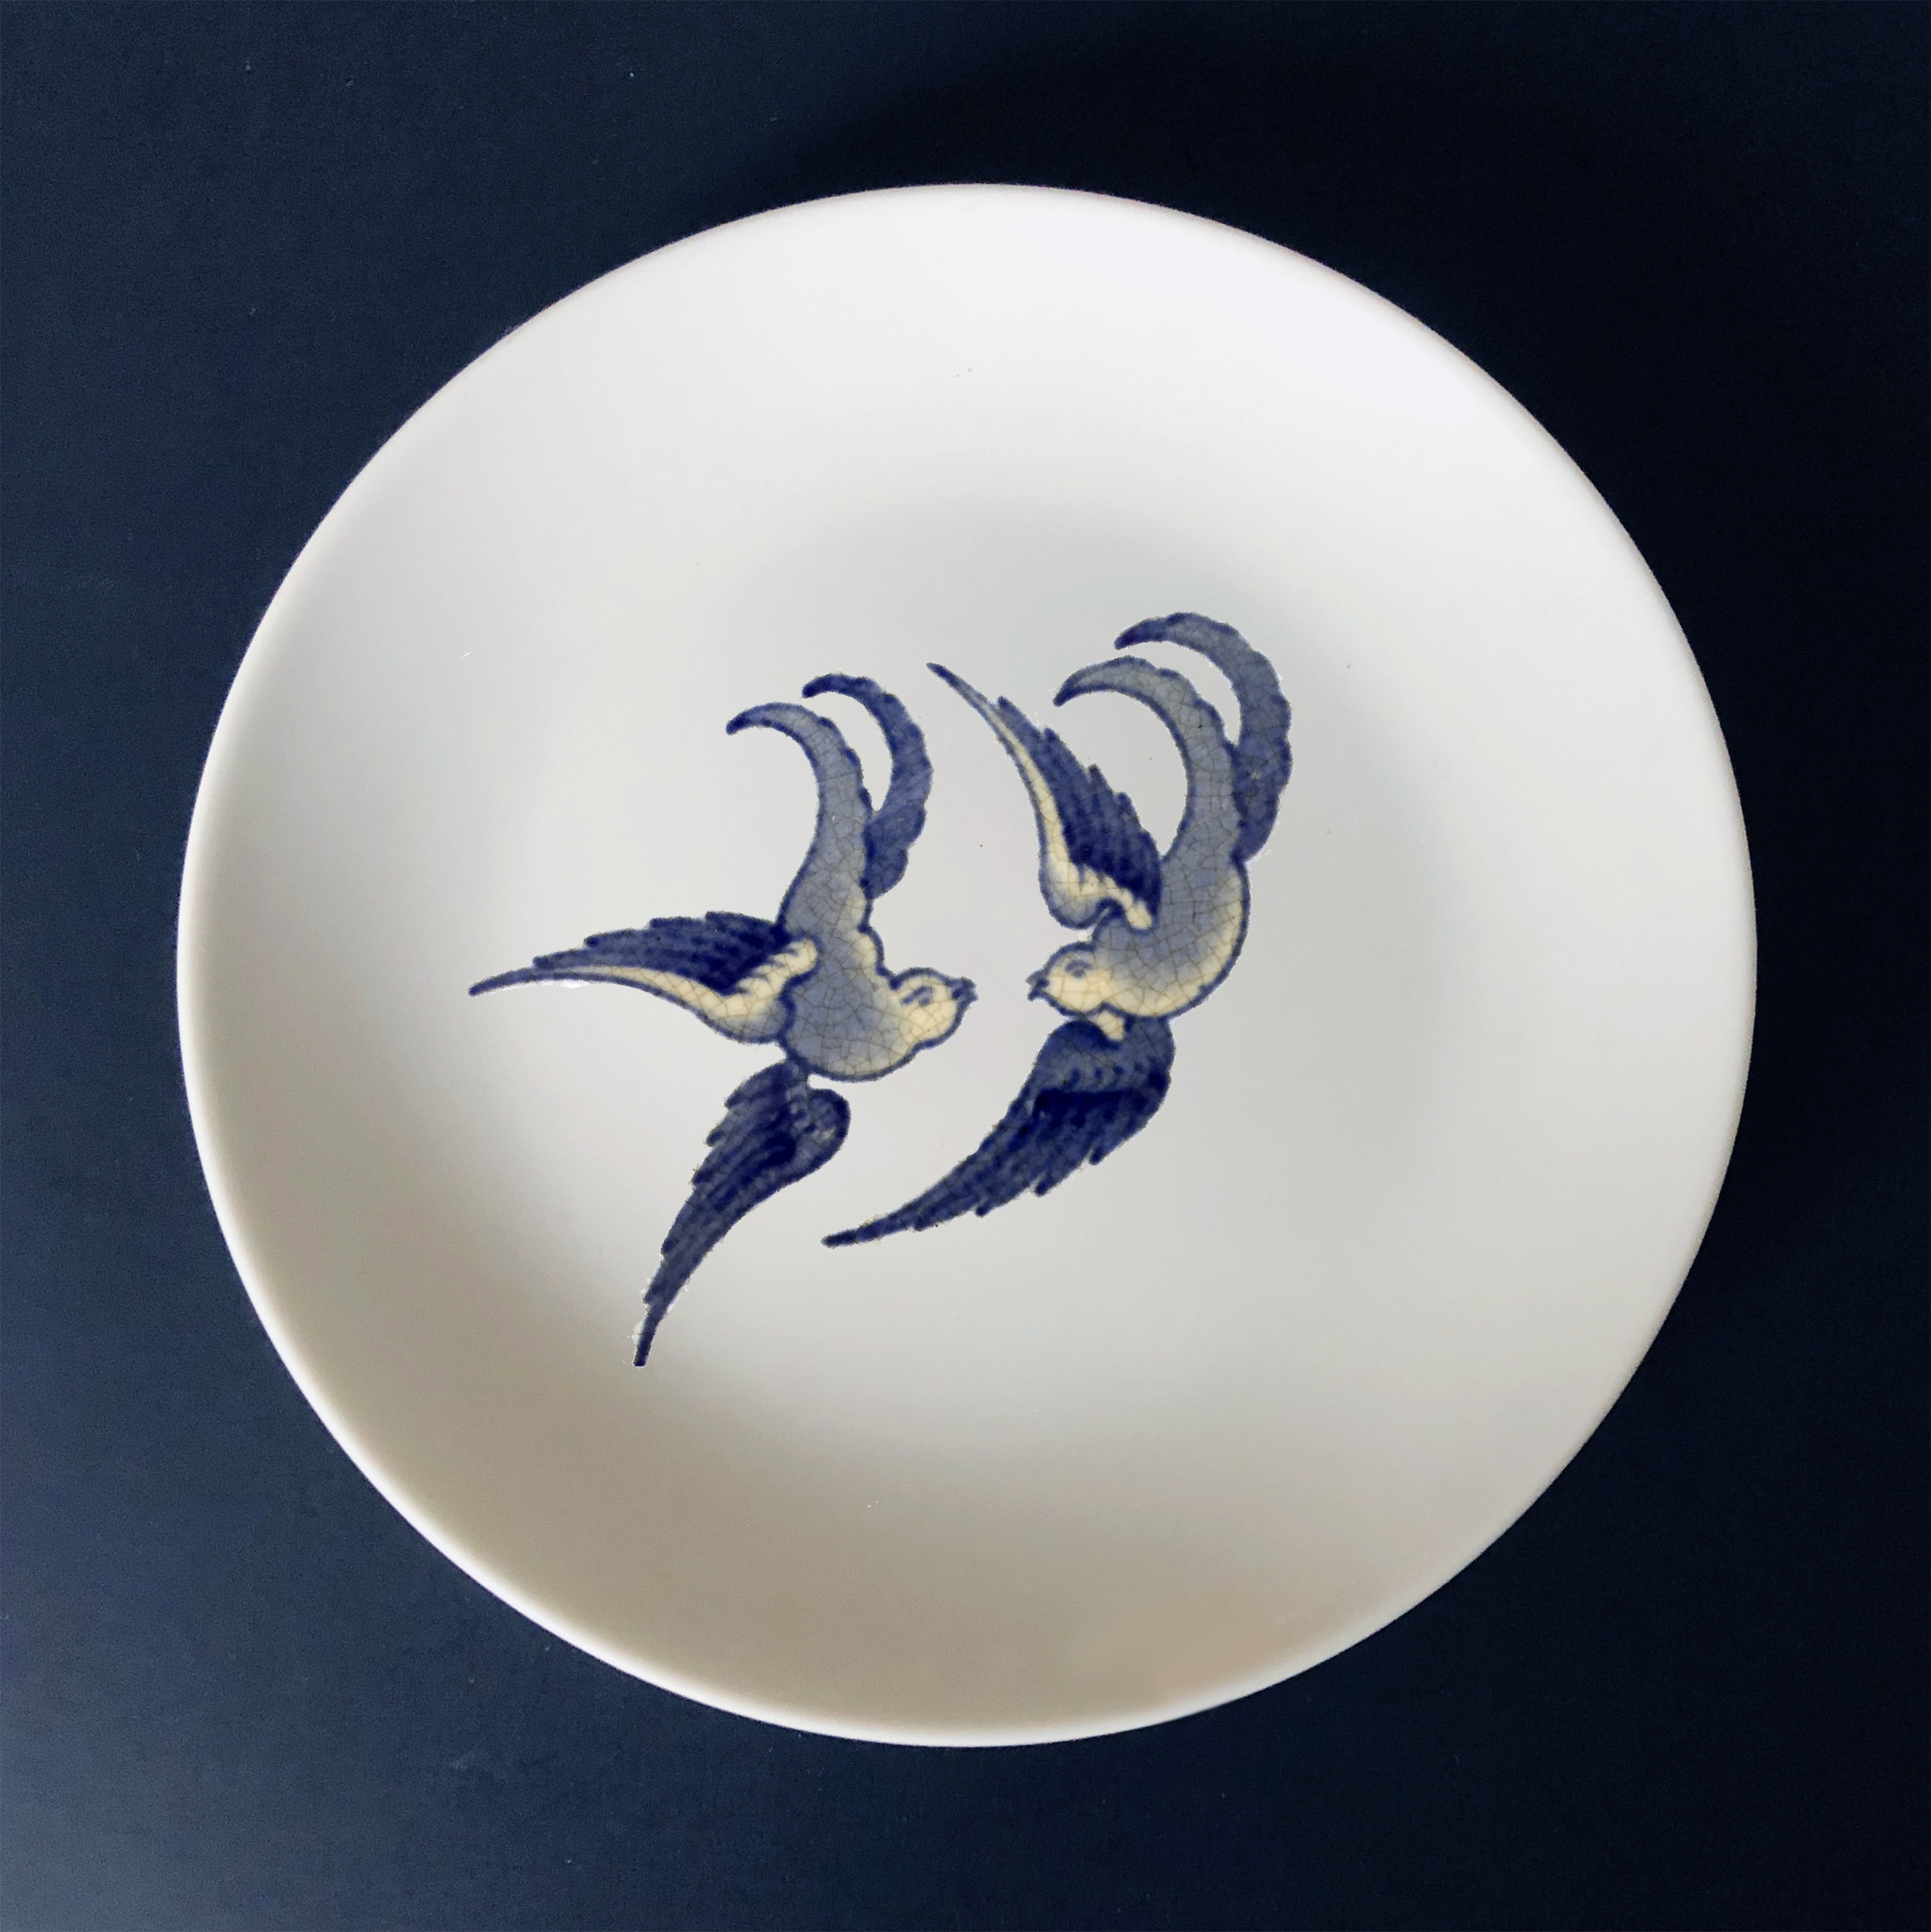 "Blue Willow Bird 1 , 2019, custom ceramic decal on a ceramic plate, 6"" in diameter"